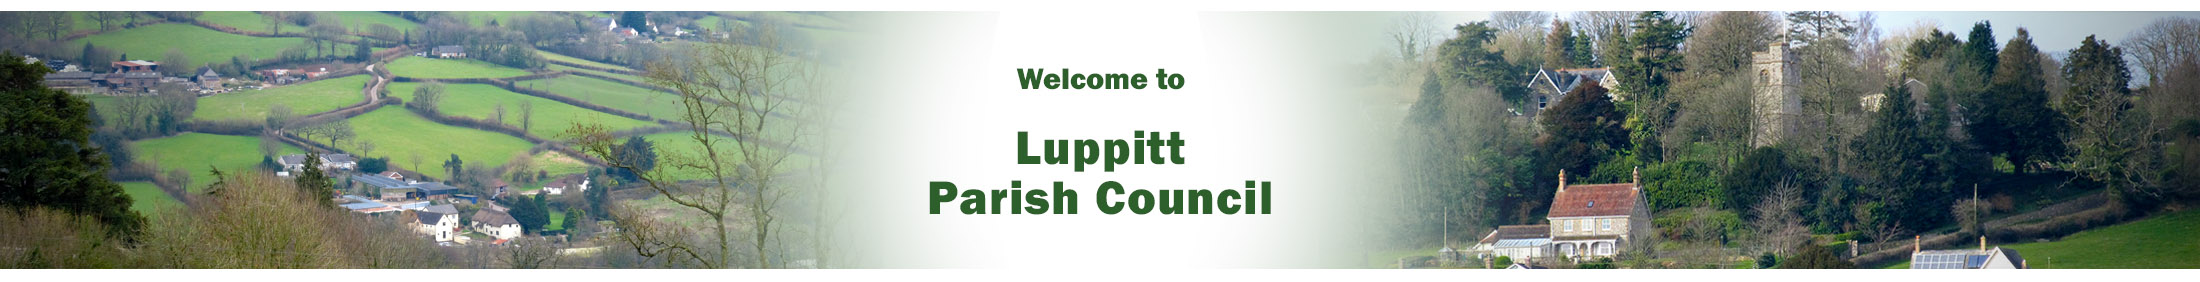 Header Image for Luppitt Parish Council